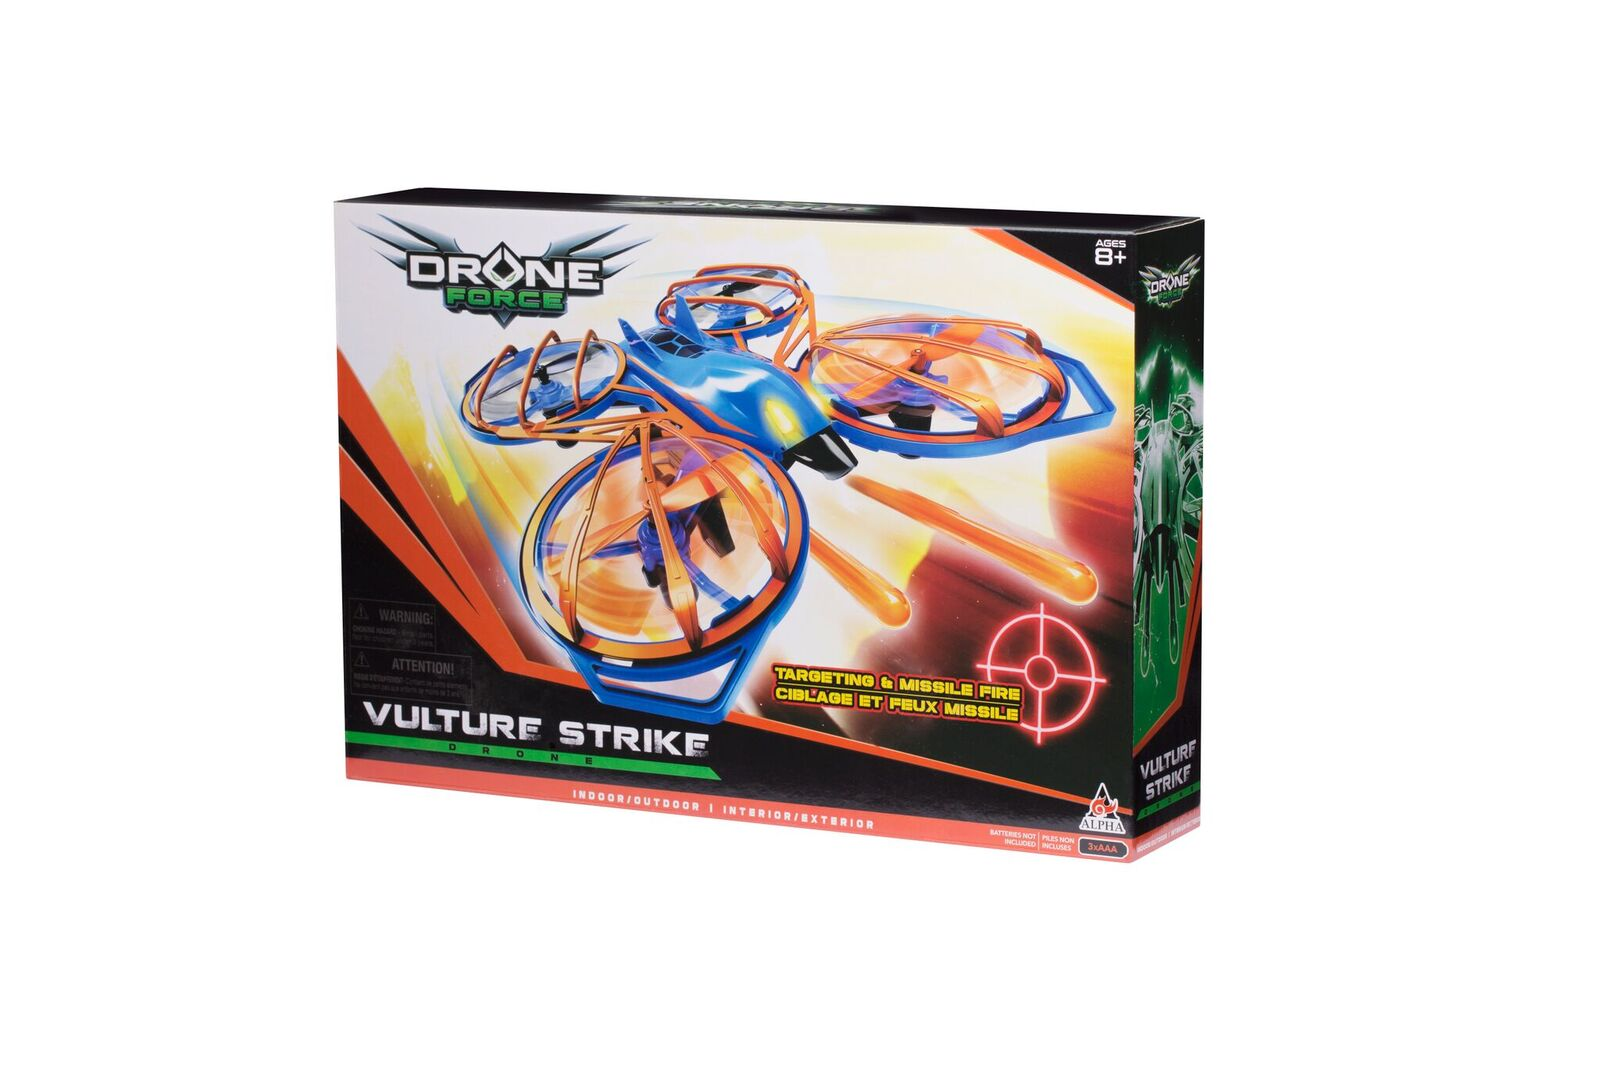 Drone Force Vulture Strike 4 Ch Drone by Auldey Toys